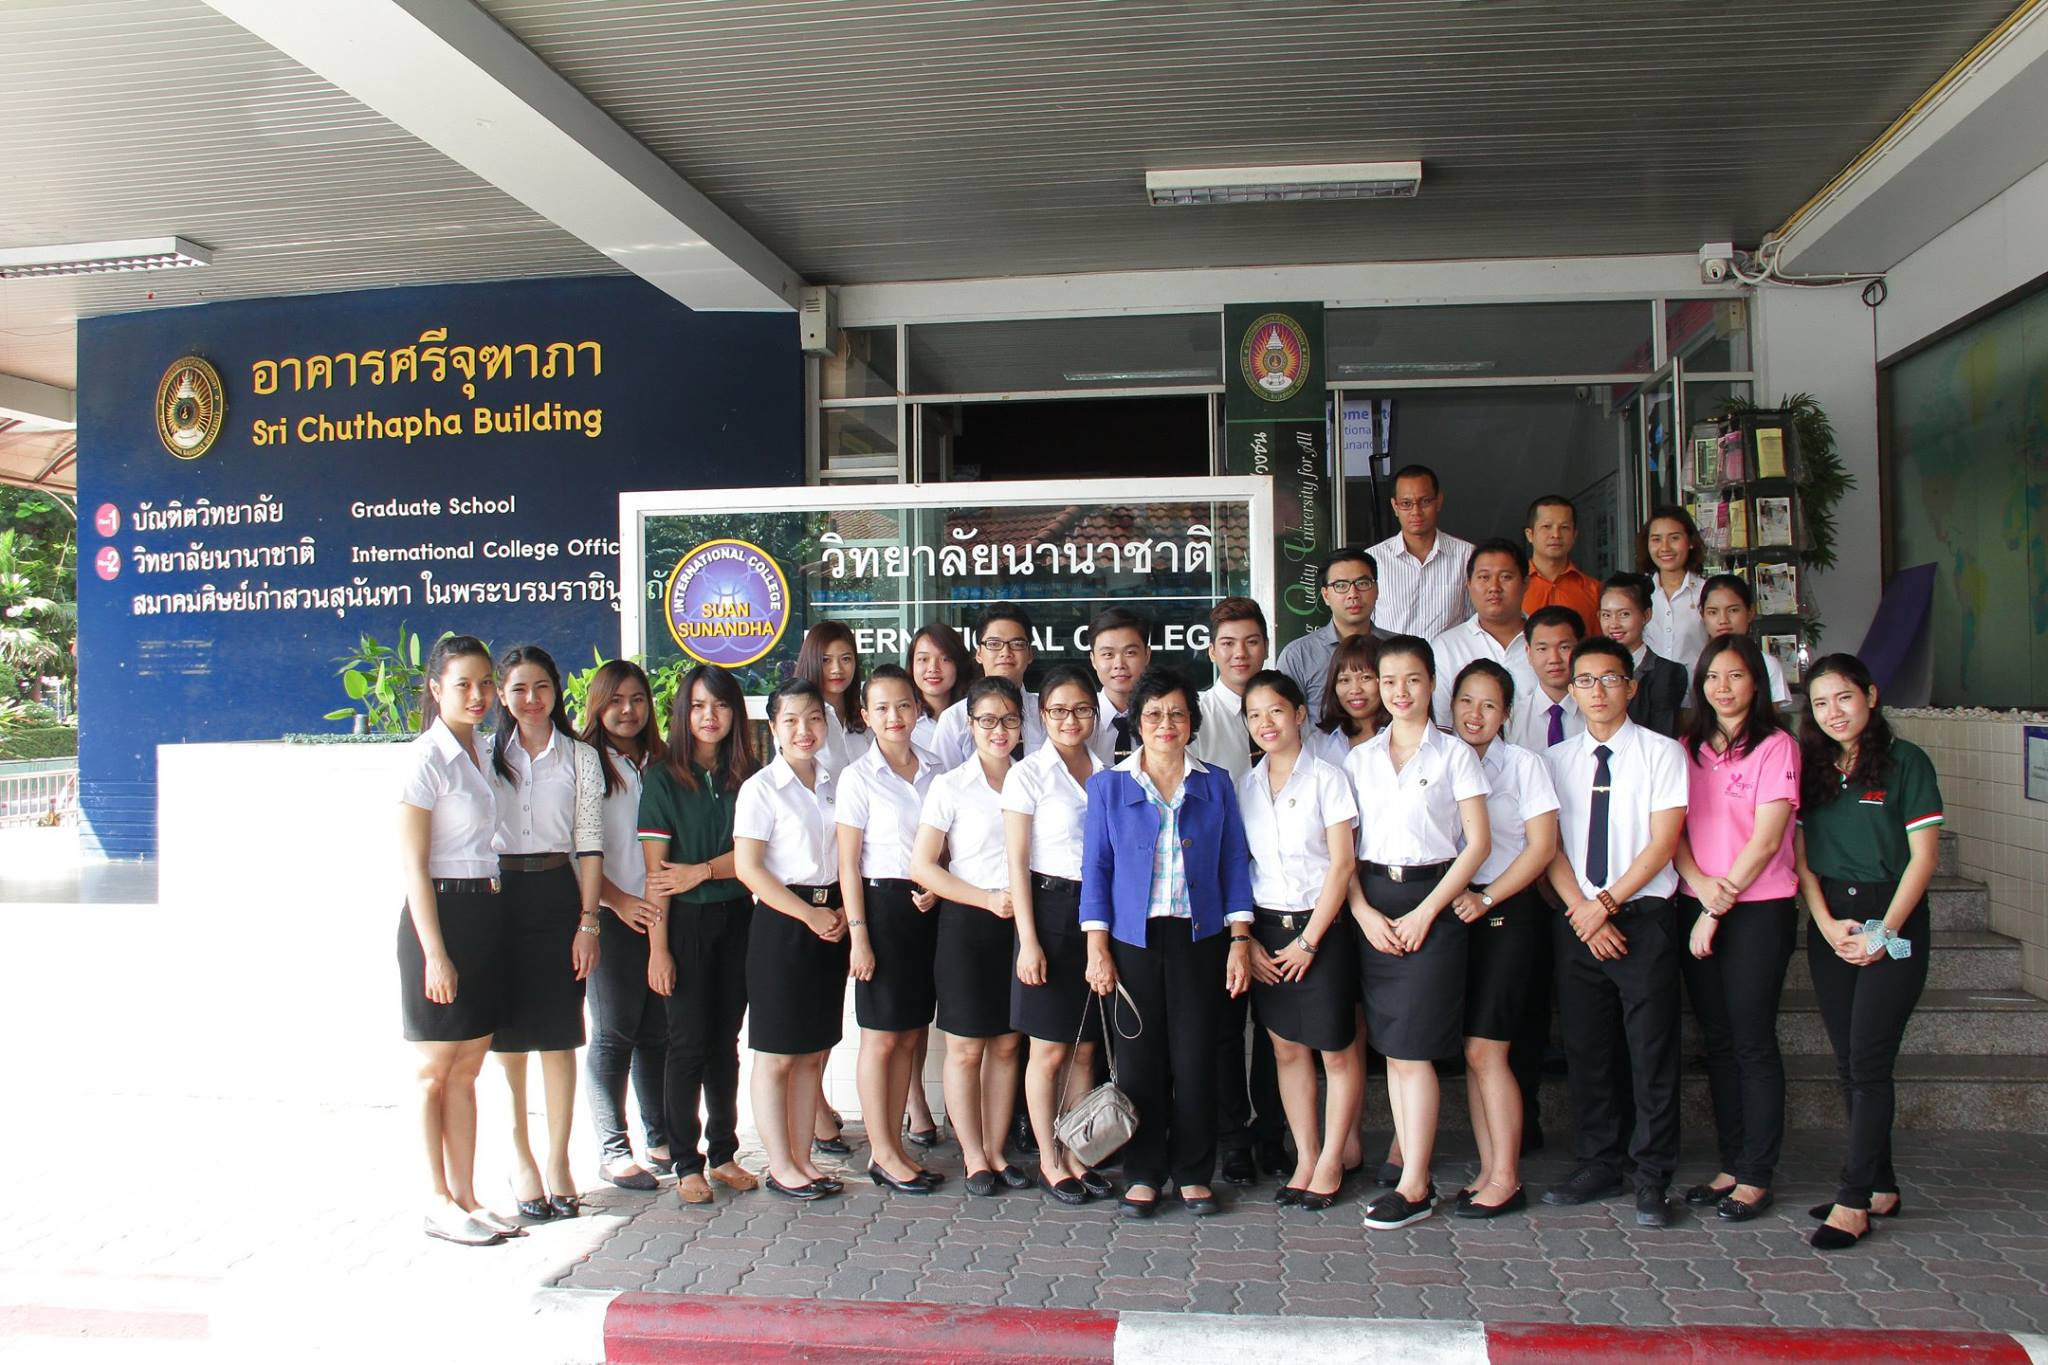 SSRUIC welcomed Vietnamese students  from Hue University